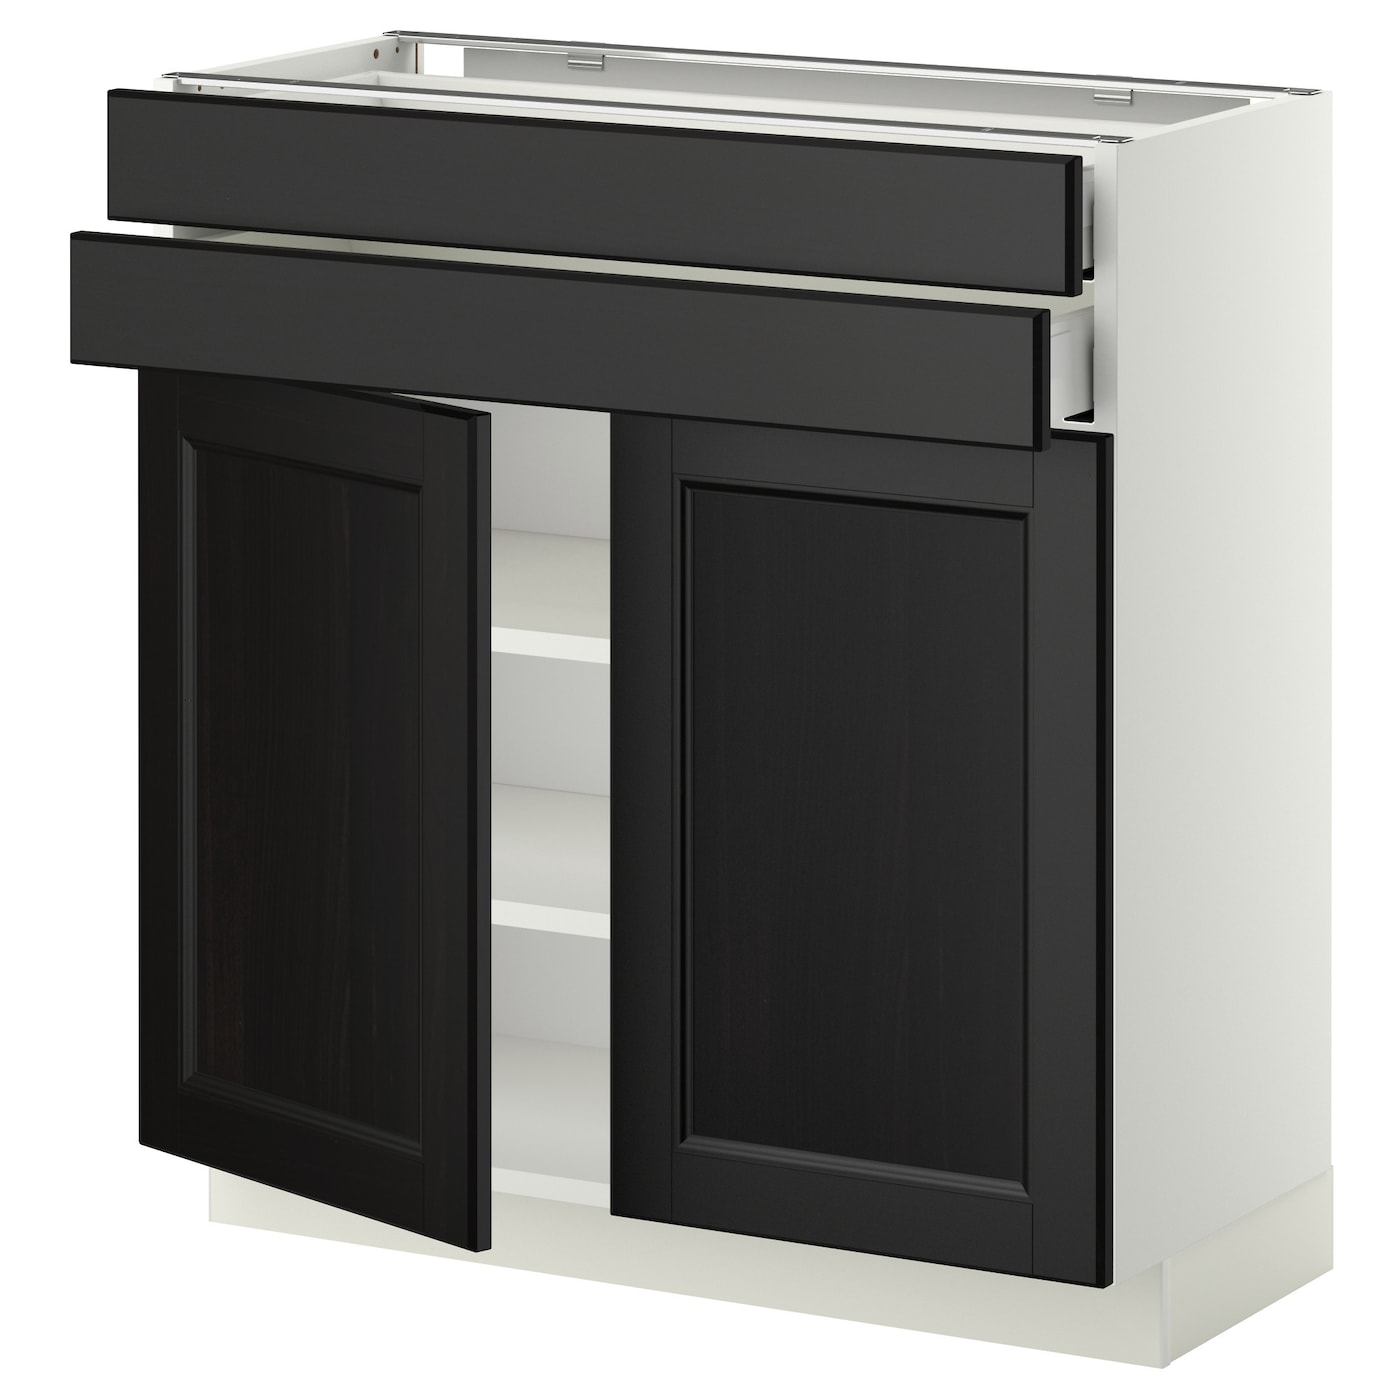 Metod maximera base cabinet w 2 doors 2 drawers white for Black kitchen base cabinets